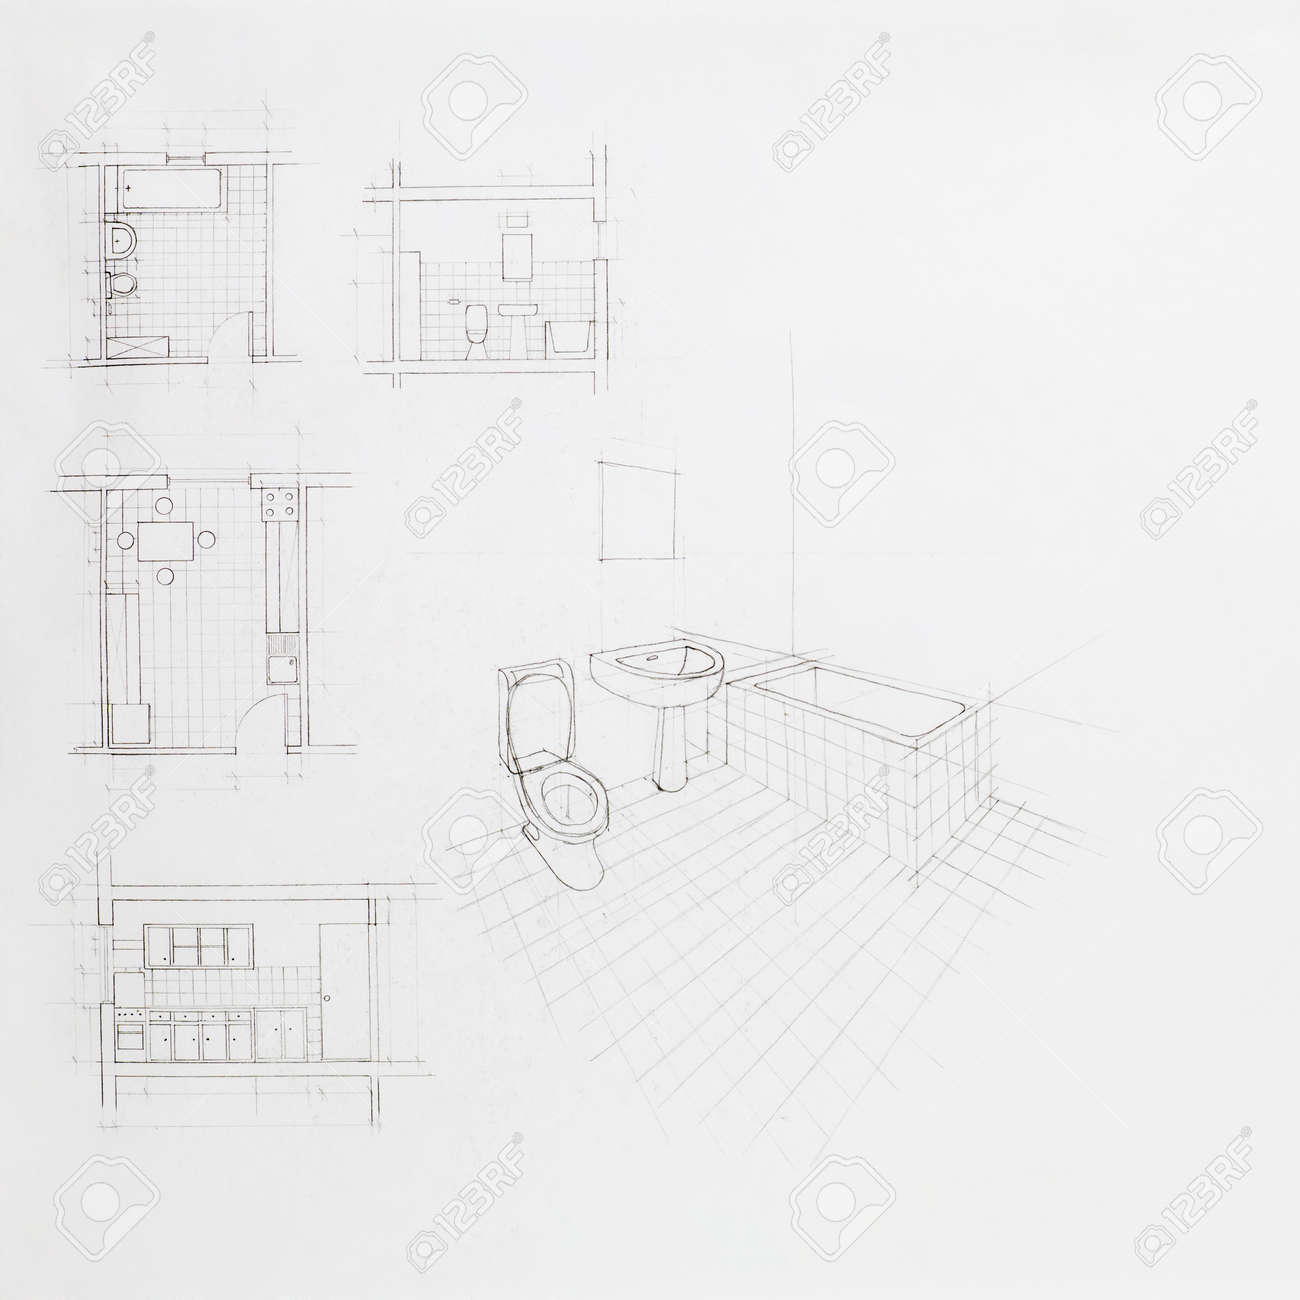 Bathroom perspective drawing - Stock Photo Hand Drawn Architectural Perspective Of An Apartment Bathroom And Blueprint Of Other Rooms